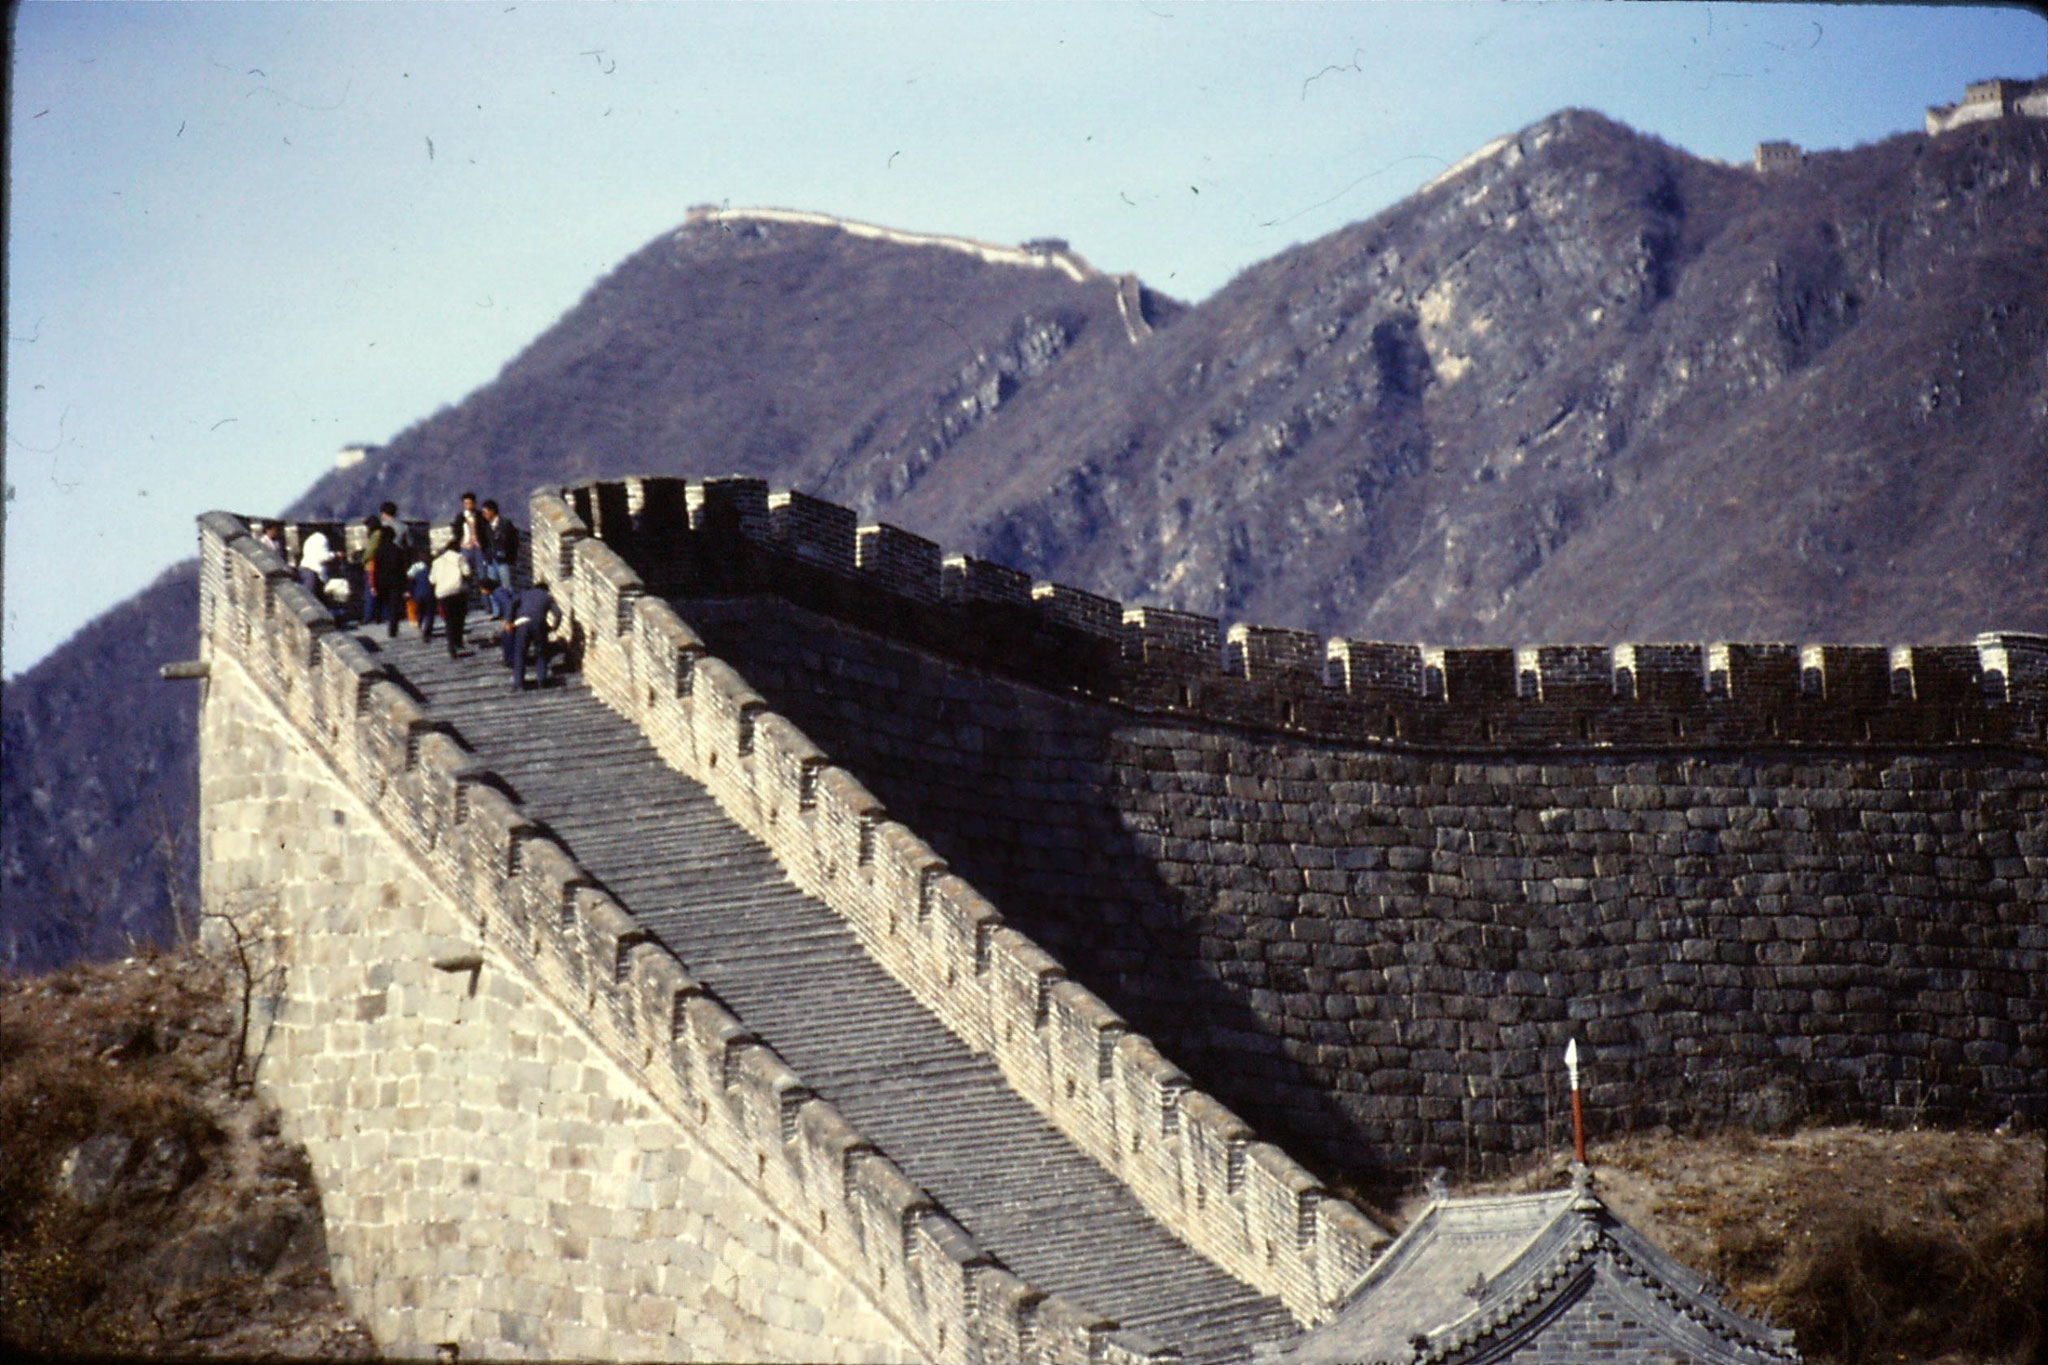 13/11/1988: 23: Great Wall at Mutianyu